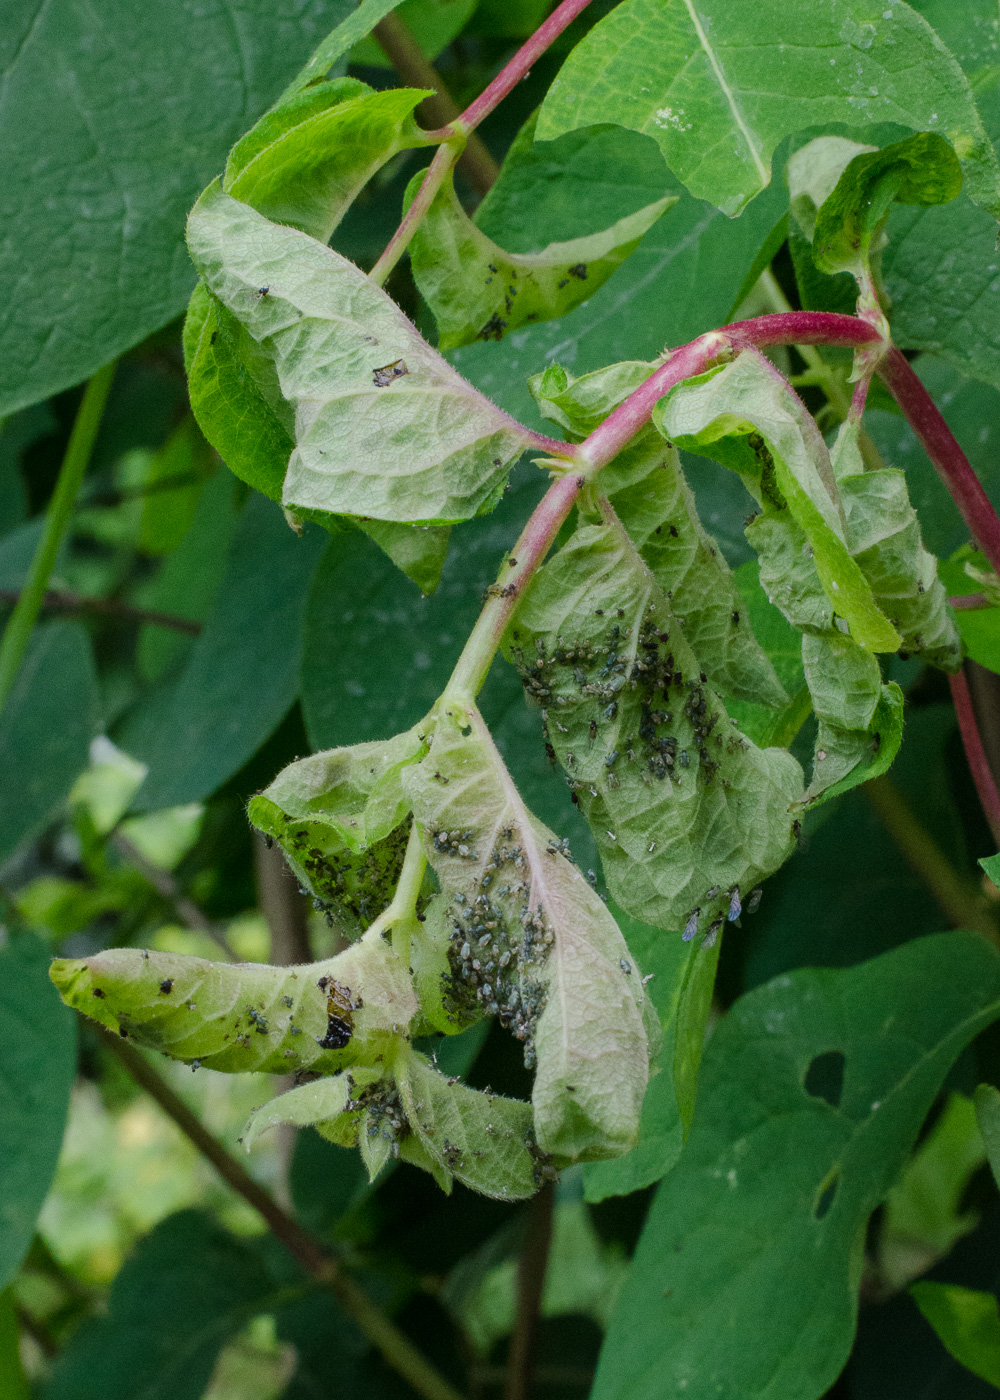 Tips for controlling plant pests - Growing Family